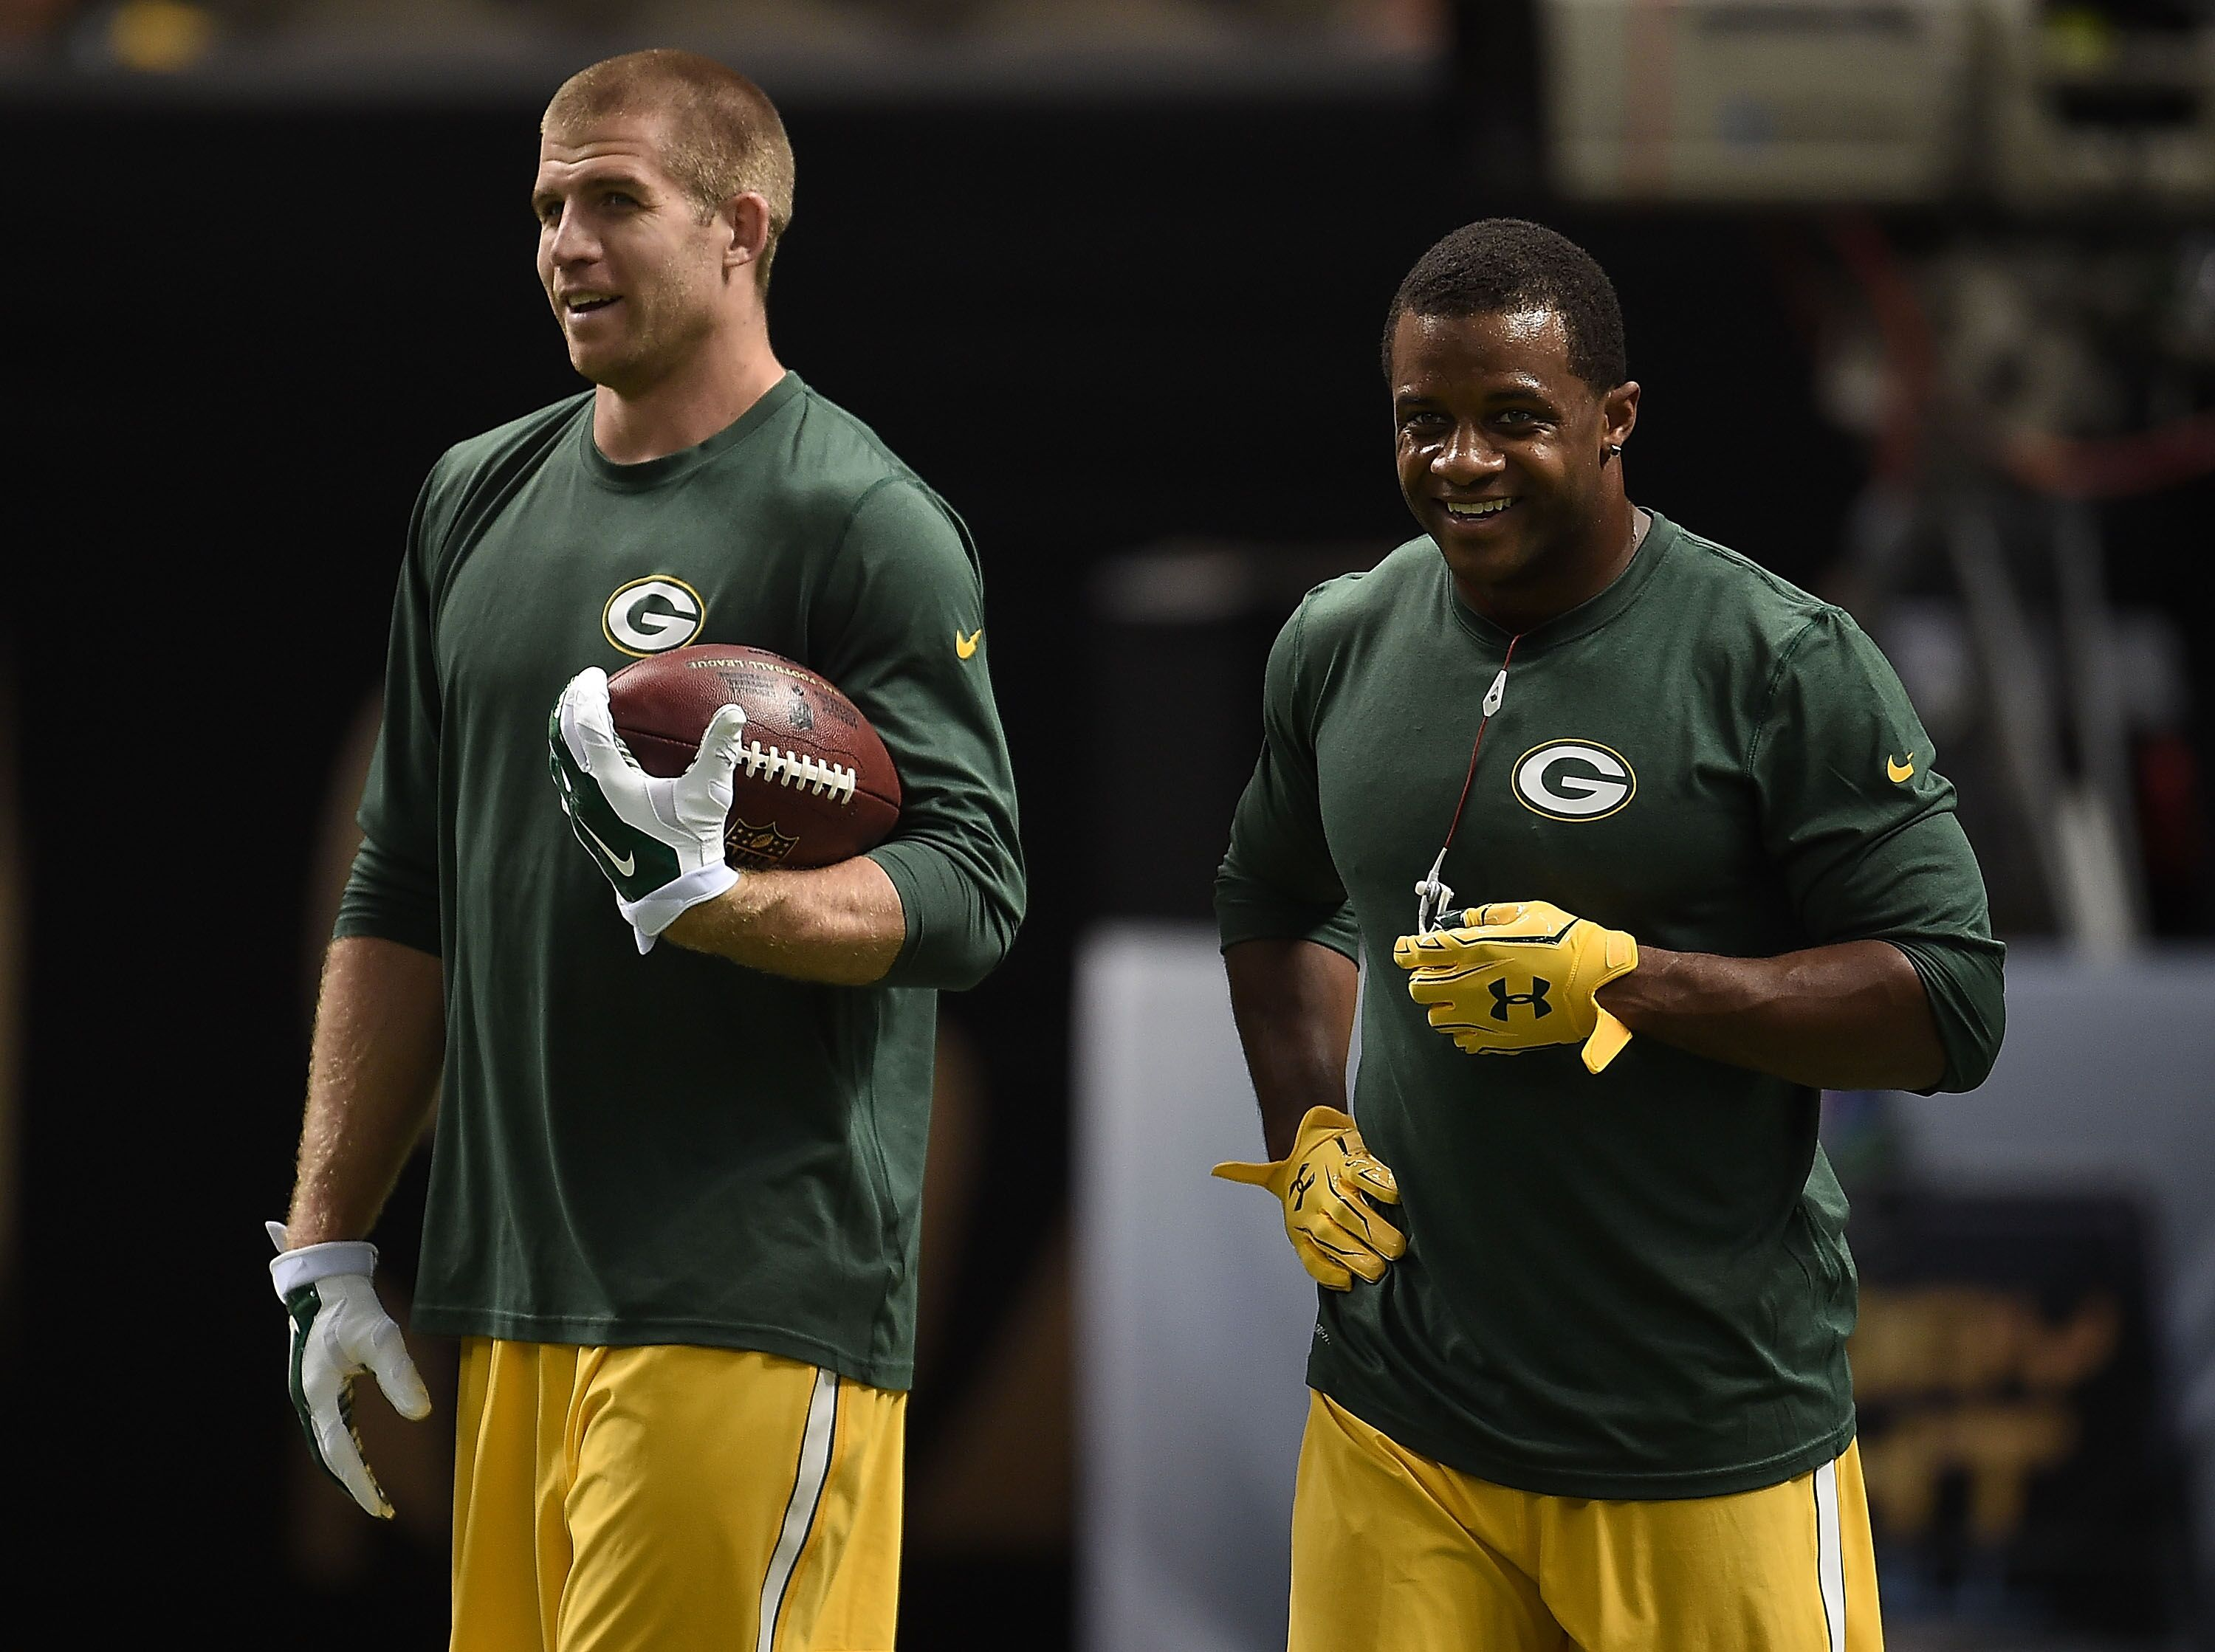 Packers Future Is Uncertain For Jordy Nelson And Randall Cobb